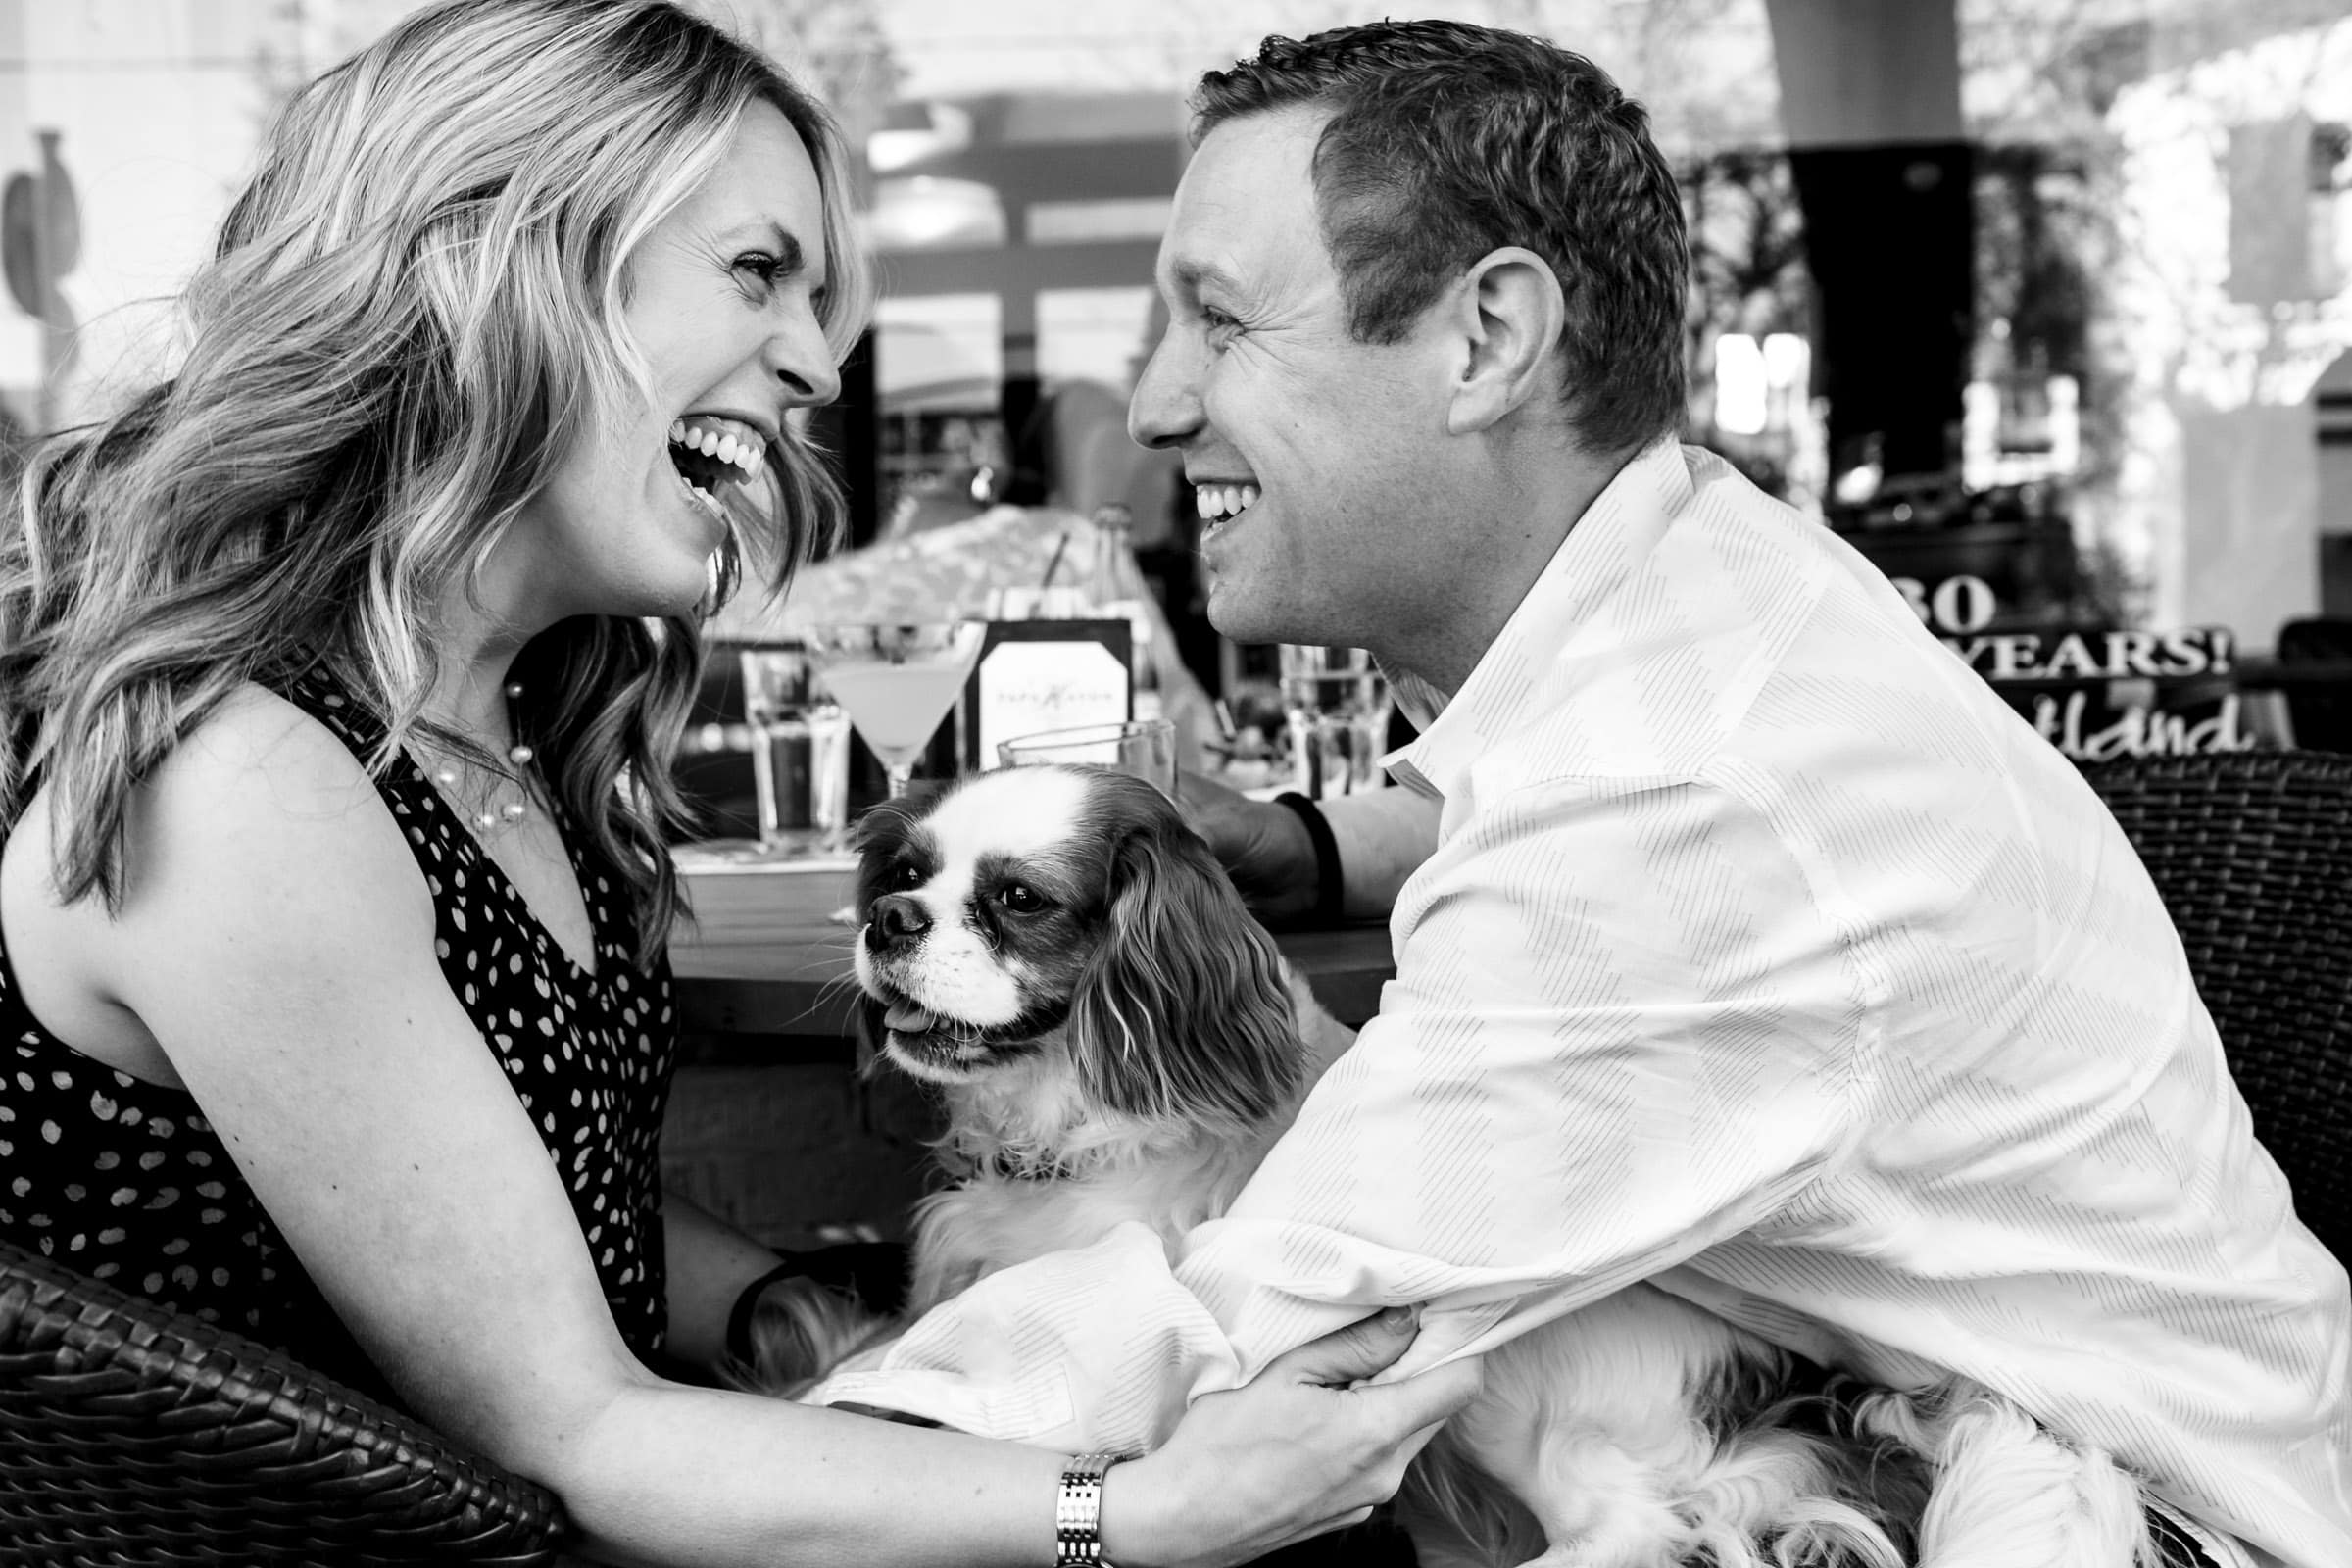 A fun laughing couple enjoying their dog and food at Papa Haydens along Northwest Nob Hill during their Portland Engagement Date